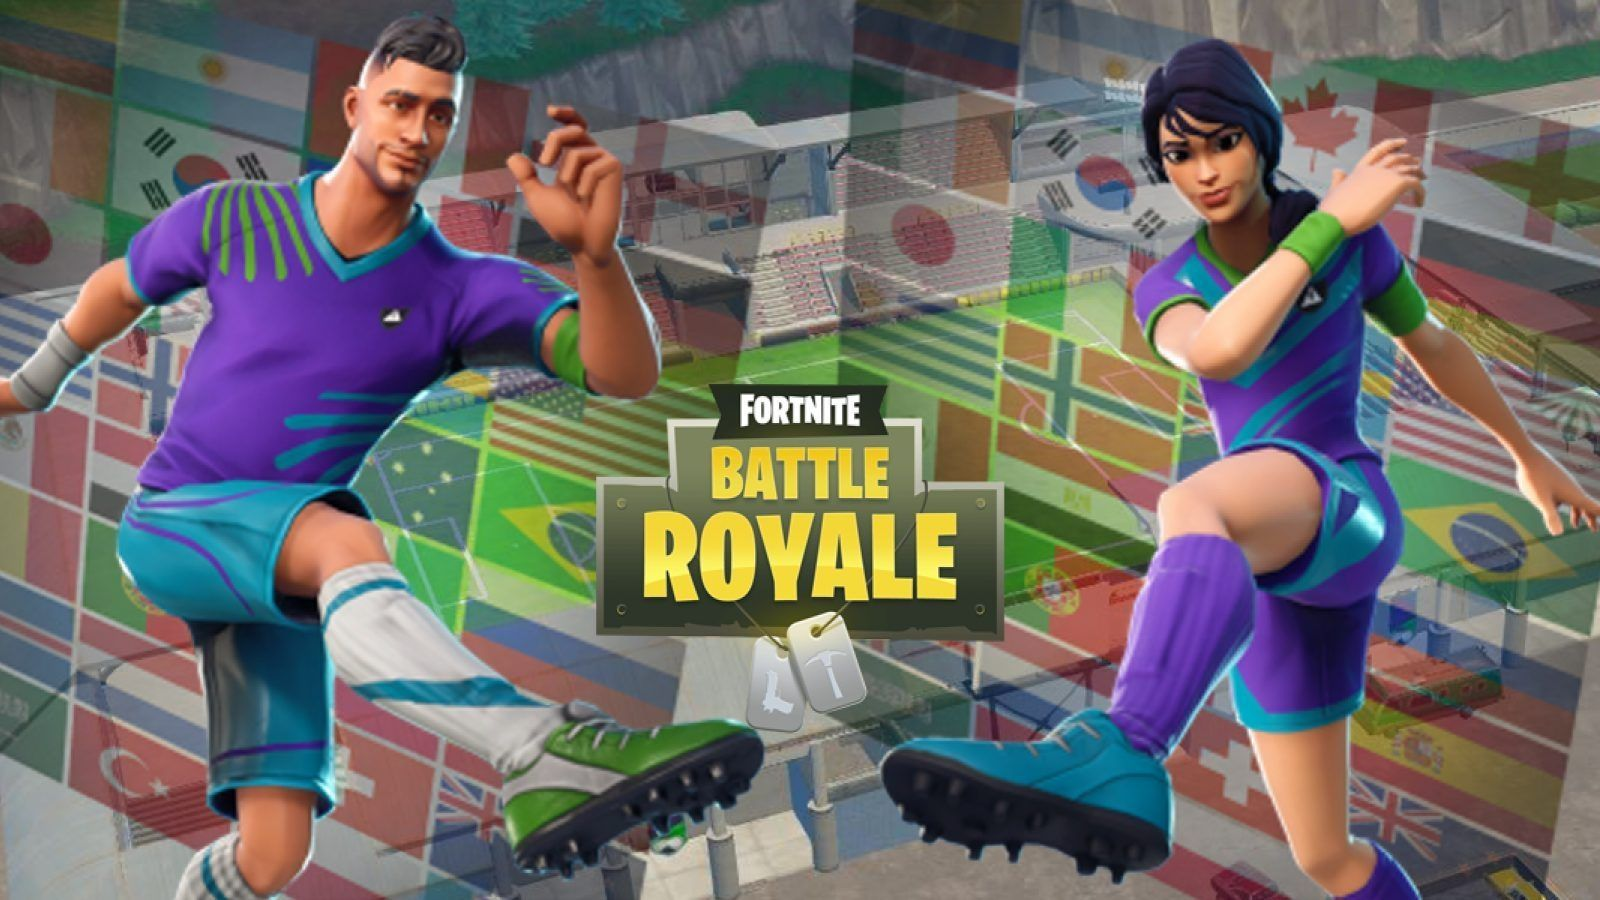 Fortnite World Cup Skin Wallpaper Fortnite Soccer Skins Wallpapers Wallpaper Cave Di 2020